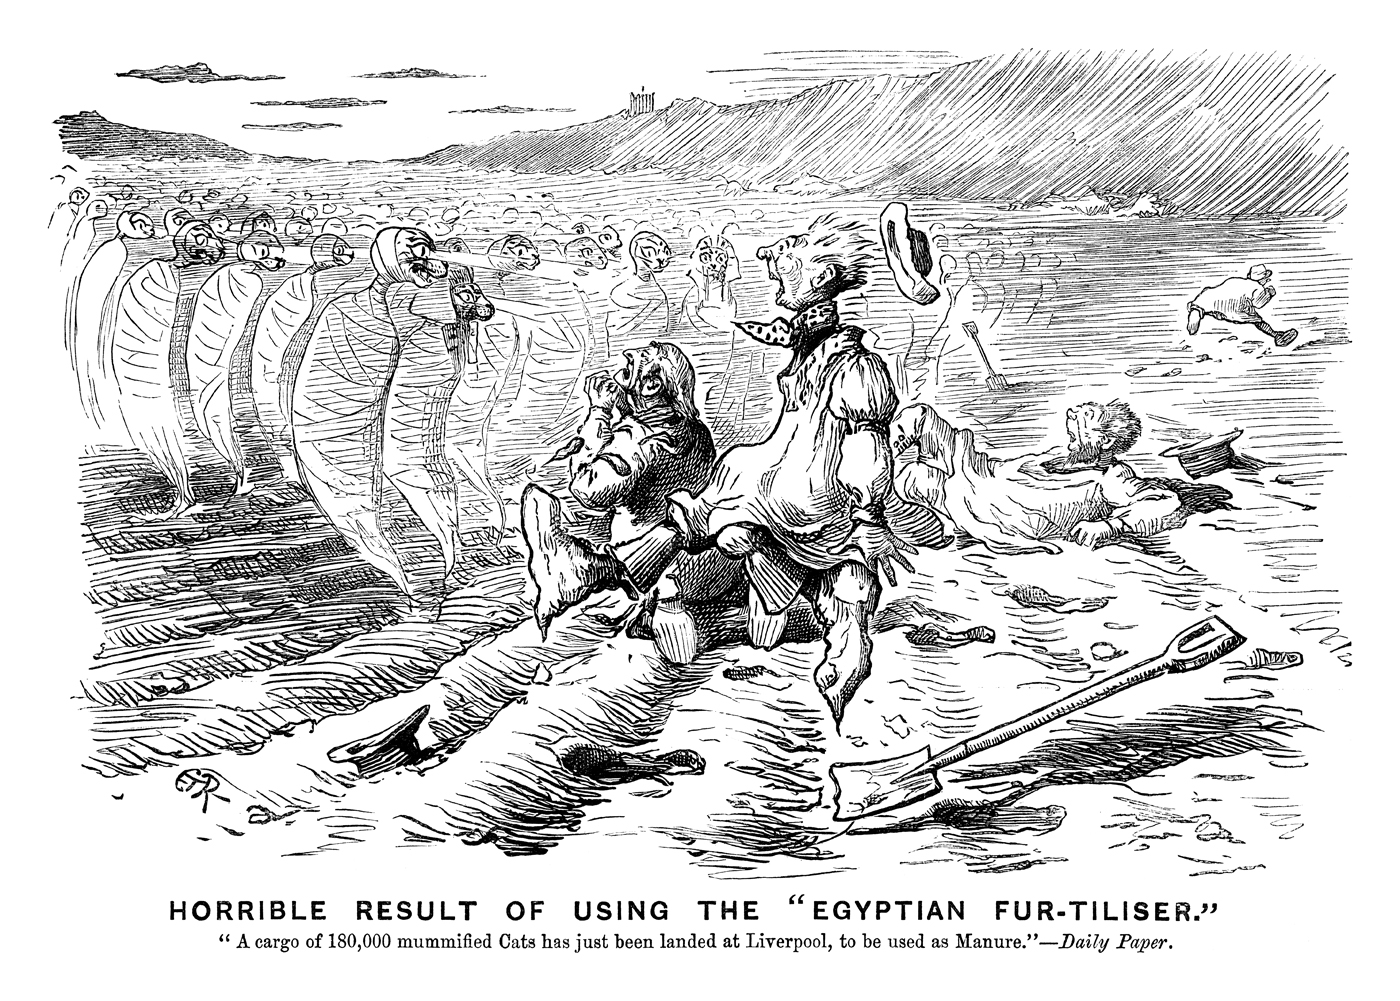 "Horrible Result of Using the 'Egyptian Fur-tiliser.' ""A cargo of 180,000 mummified cats has just been landed at Liverpool, to be used as manure."" - Daily Paper. Published in Punch 15 February 1890. By E T Reed © Punch Ltd"